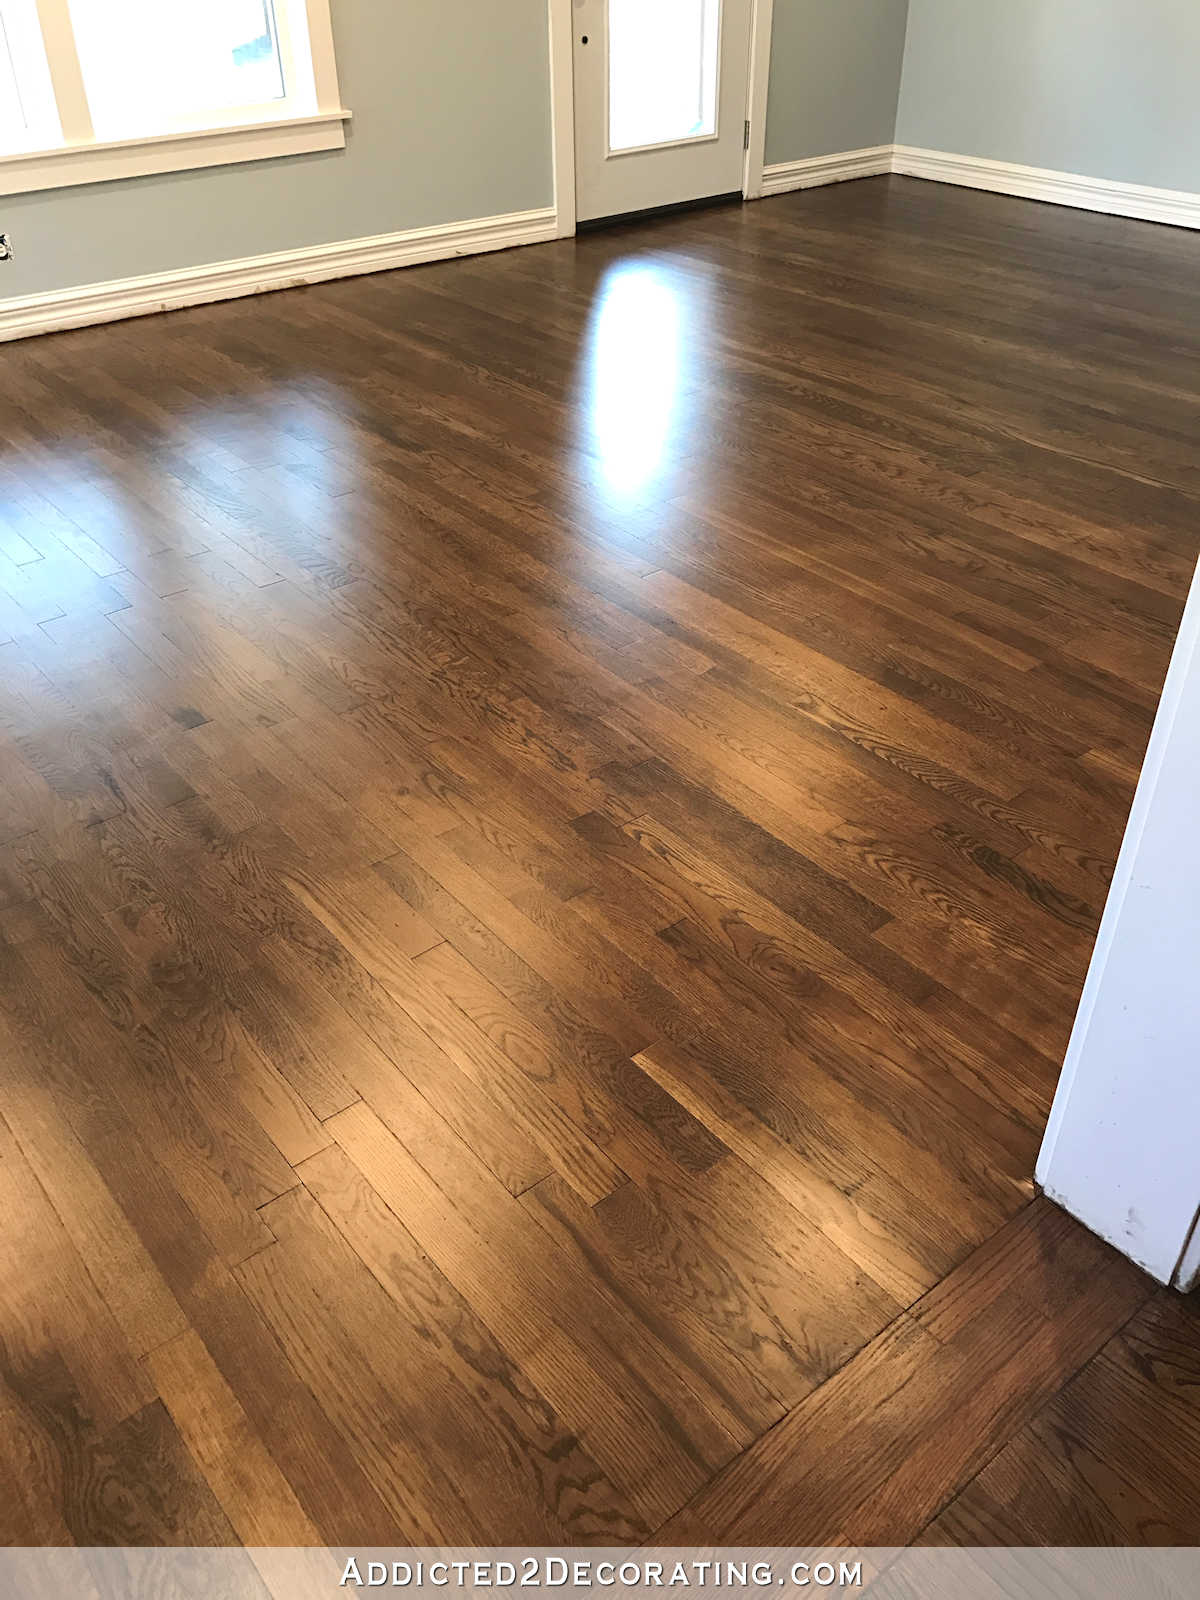 oak wood floor living room dry bar my newly refinished red hardwood floors addicted 2 decorating and entryway